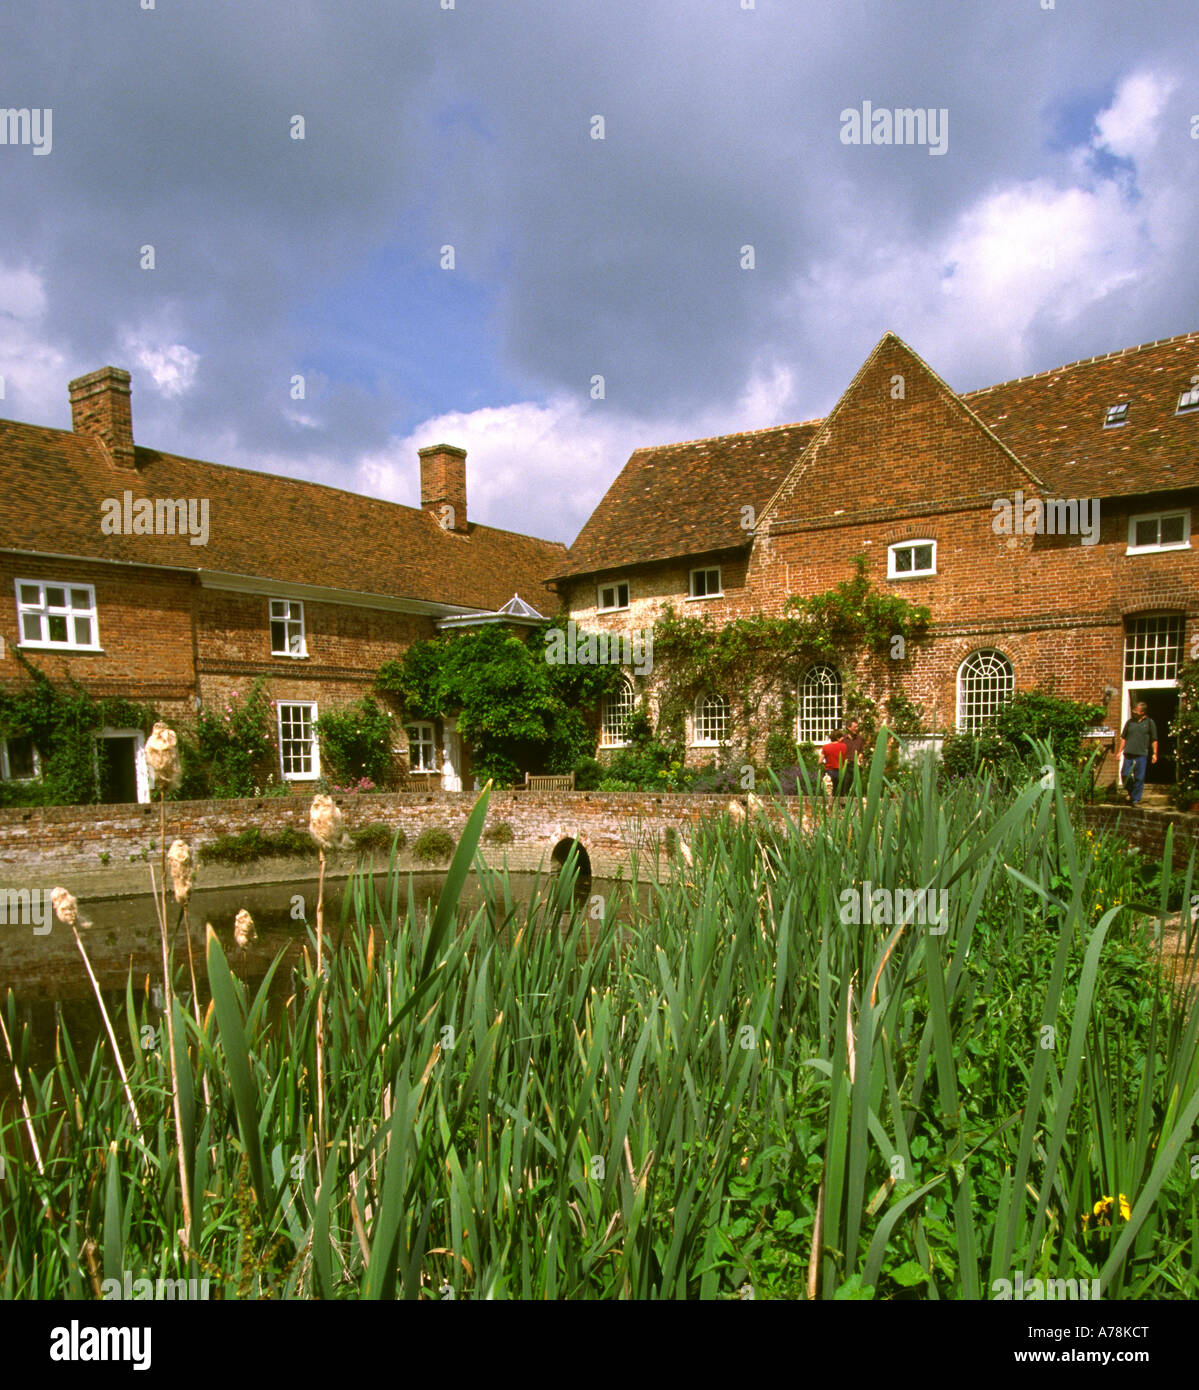 UK Essex Constable Country Flatford Mill field study centre Stock Photo